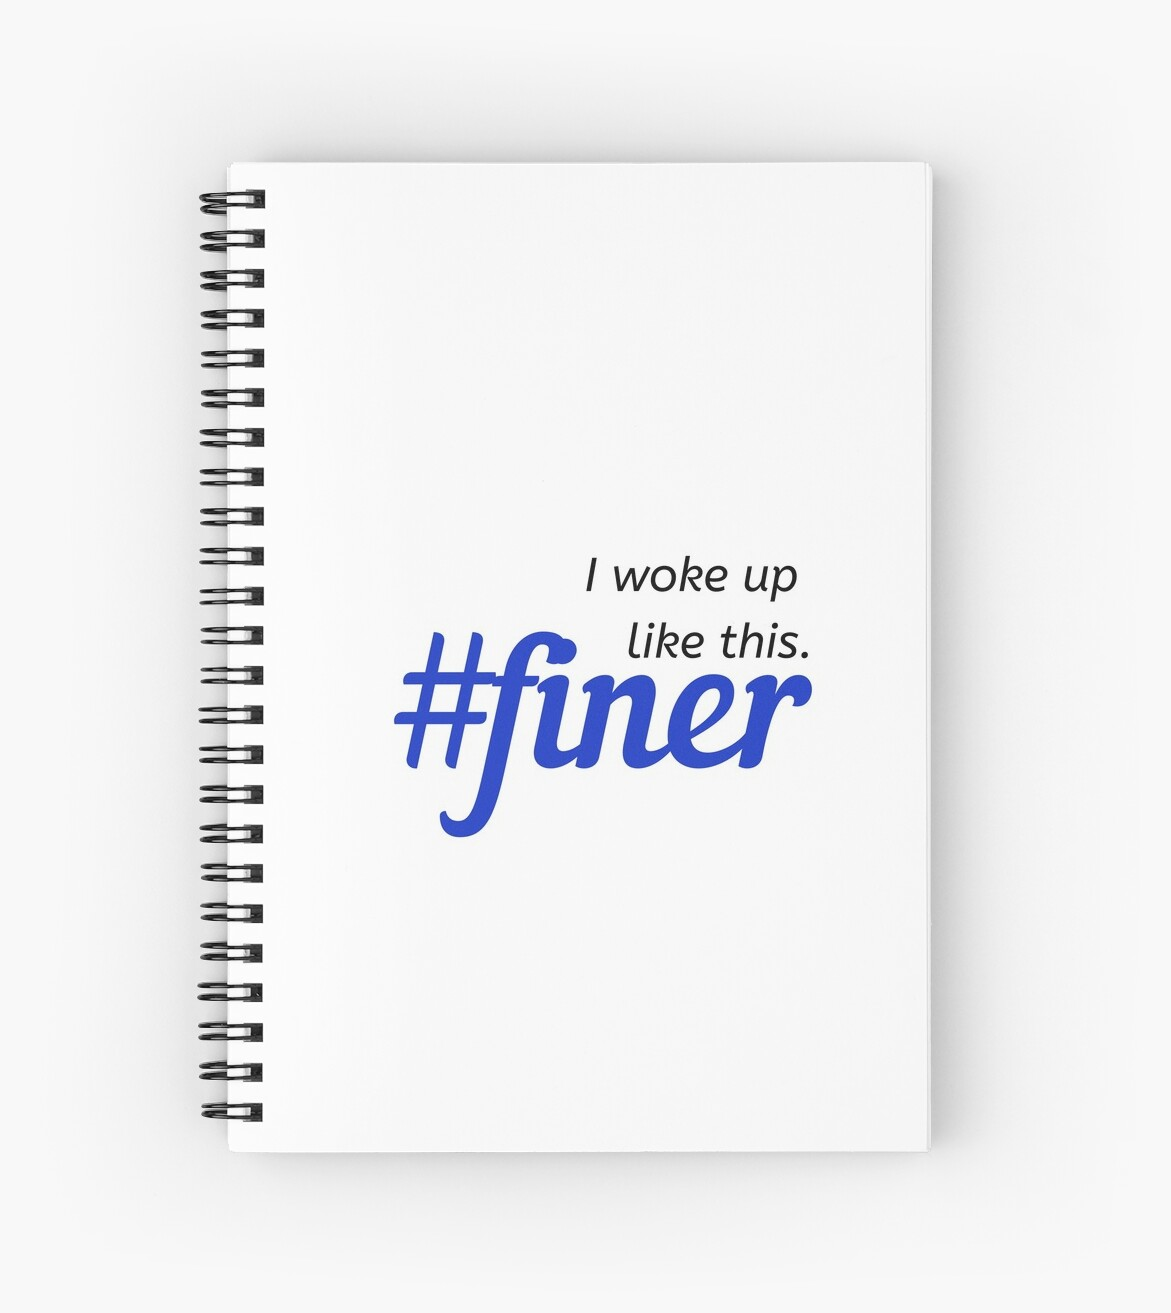 I woke up like this #finer by Tiare Smith